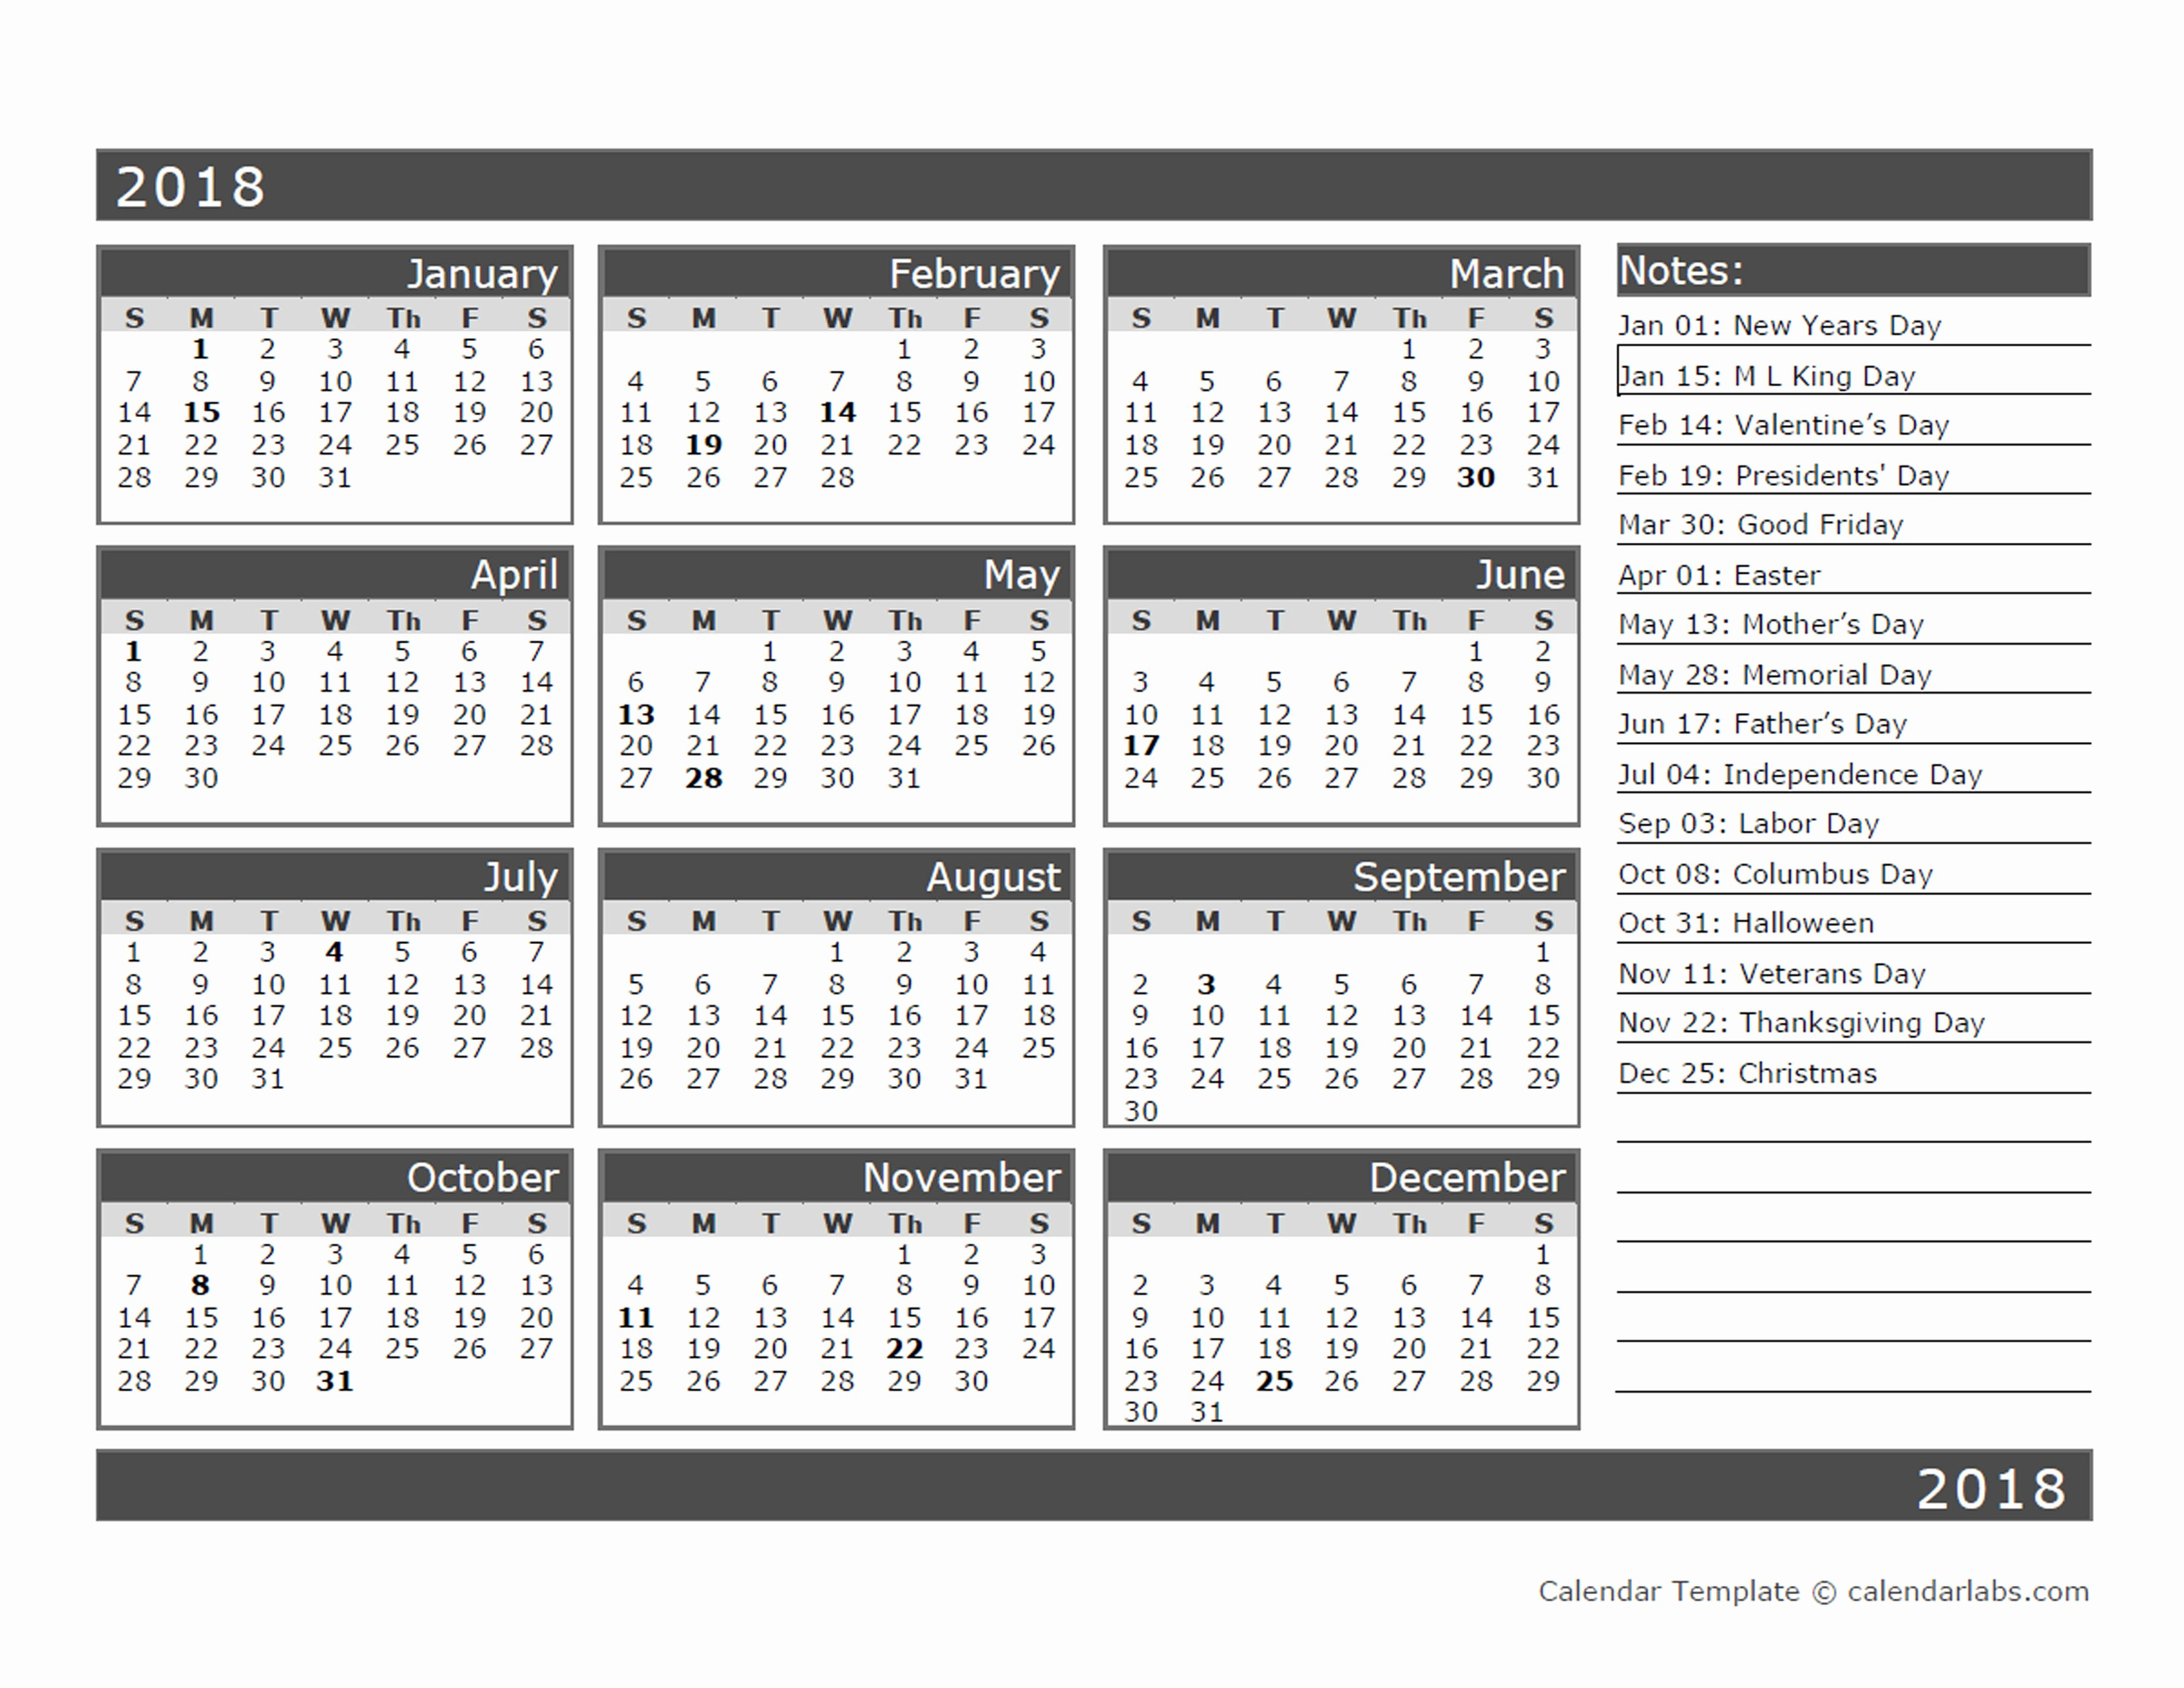 Month by Month Calendar Template Elegant 12 Month E Page Calendar Template for 2018 Free